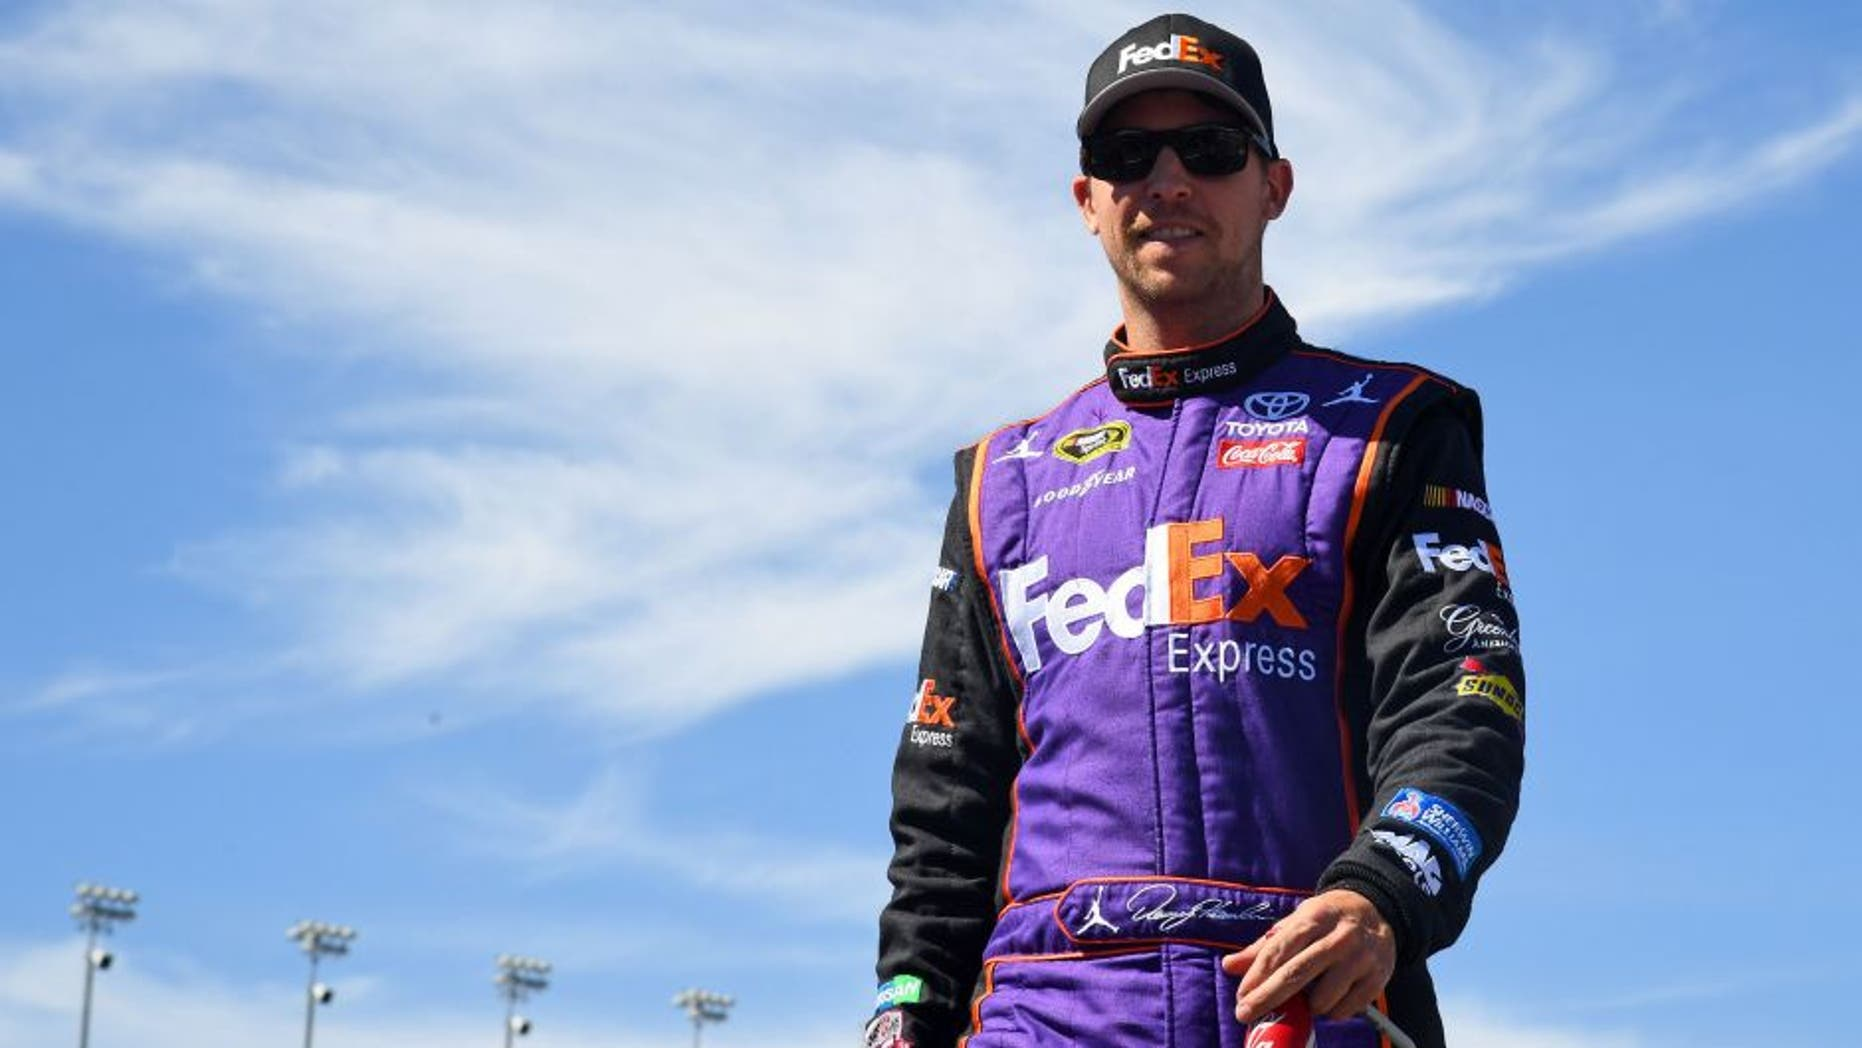 Sep 18, 2016; Joliet, IL, USA; Sprint Cup Series driver Denny Hamlin (11) before the Teenage Mutant Ninja Turtles 400 at Chicagoland Speedway. Mandatory Credit: Mike DiNovo-USA TODAY Sports